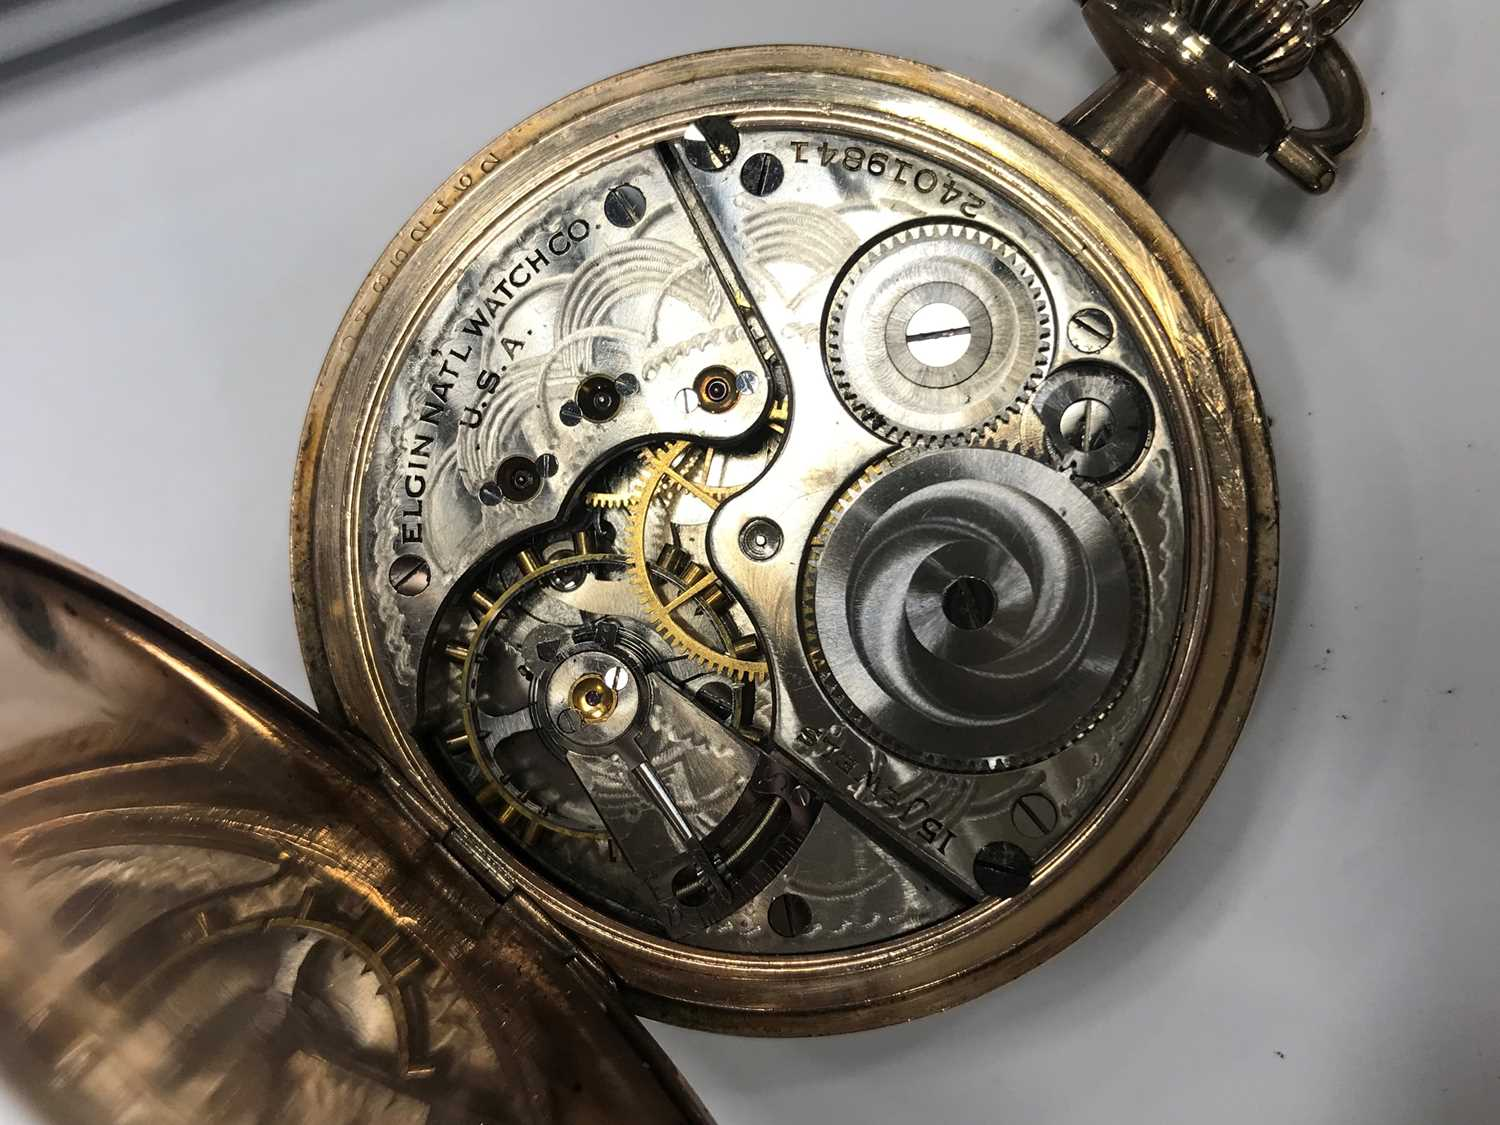 A GOLD PLATED ELGIN POCKET WATCH AND A GOLD WATCH CHAIN - Image 4 of 6